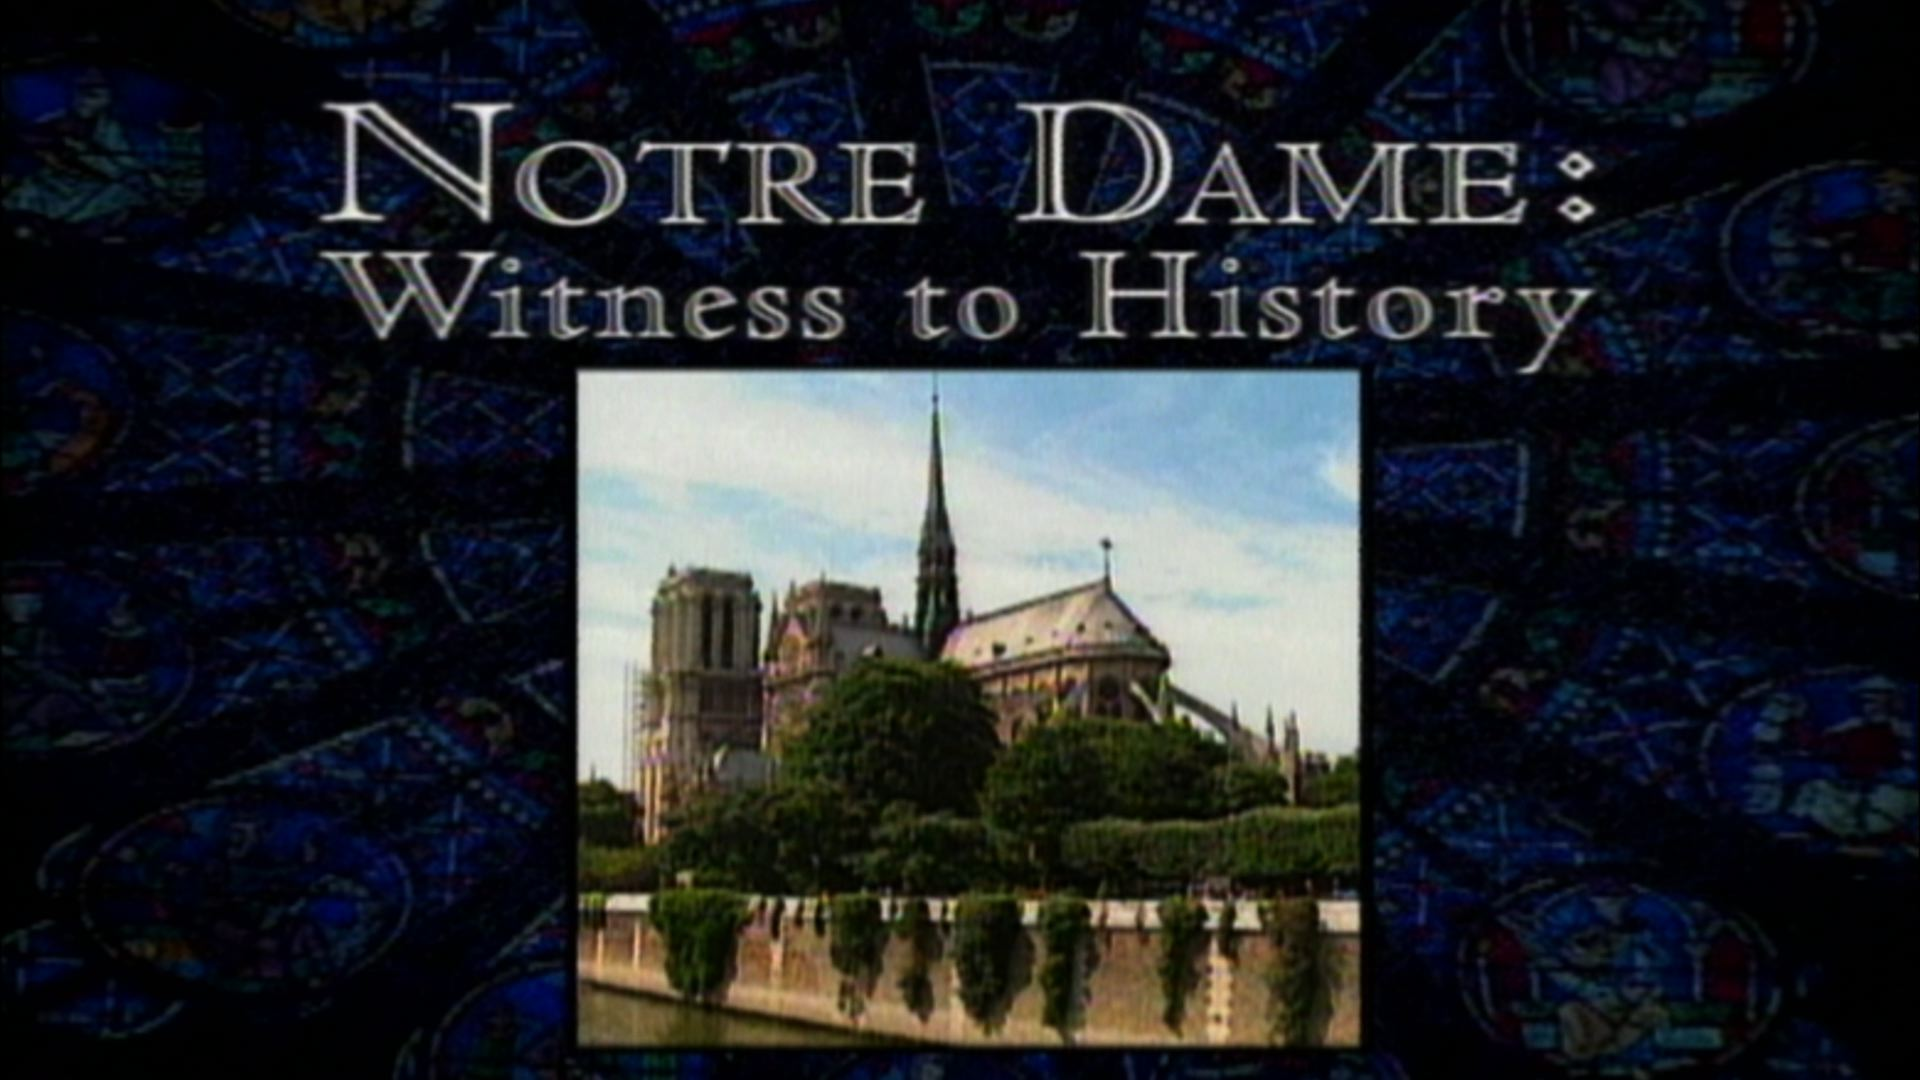 Notre Dame: Witness to History